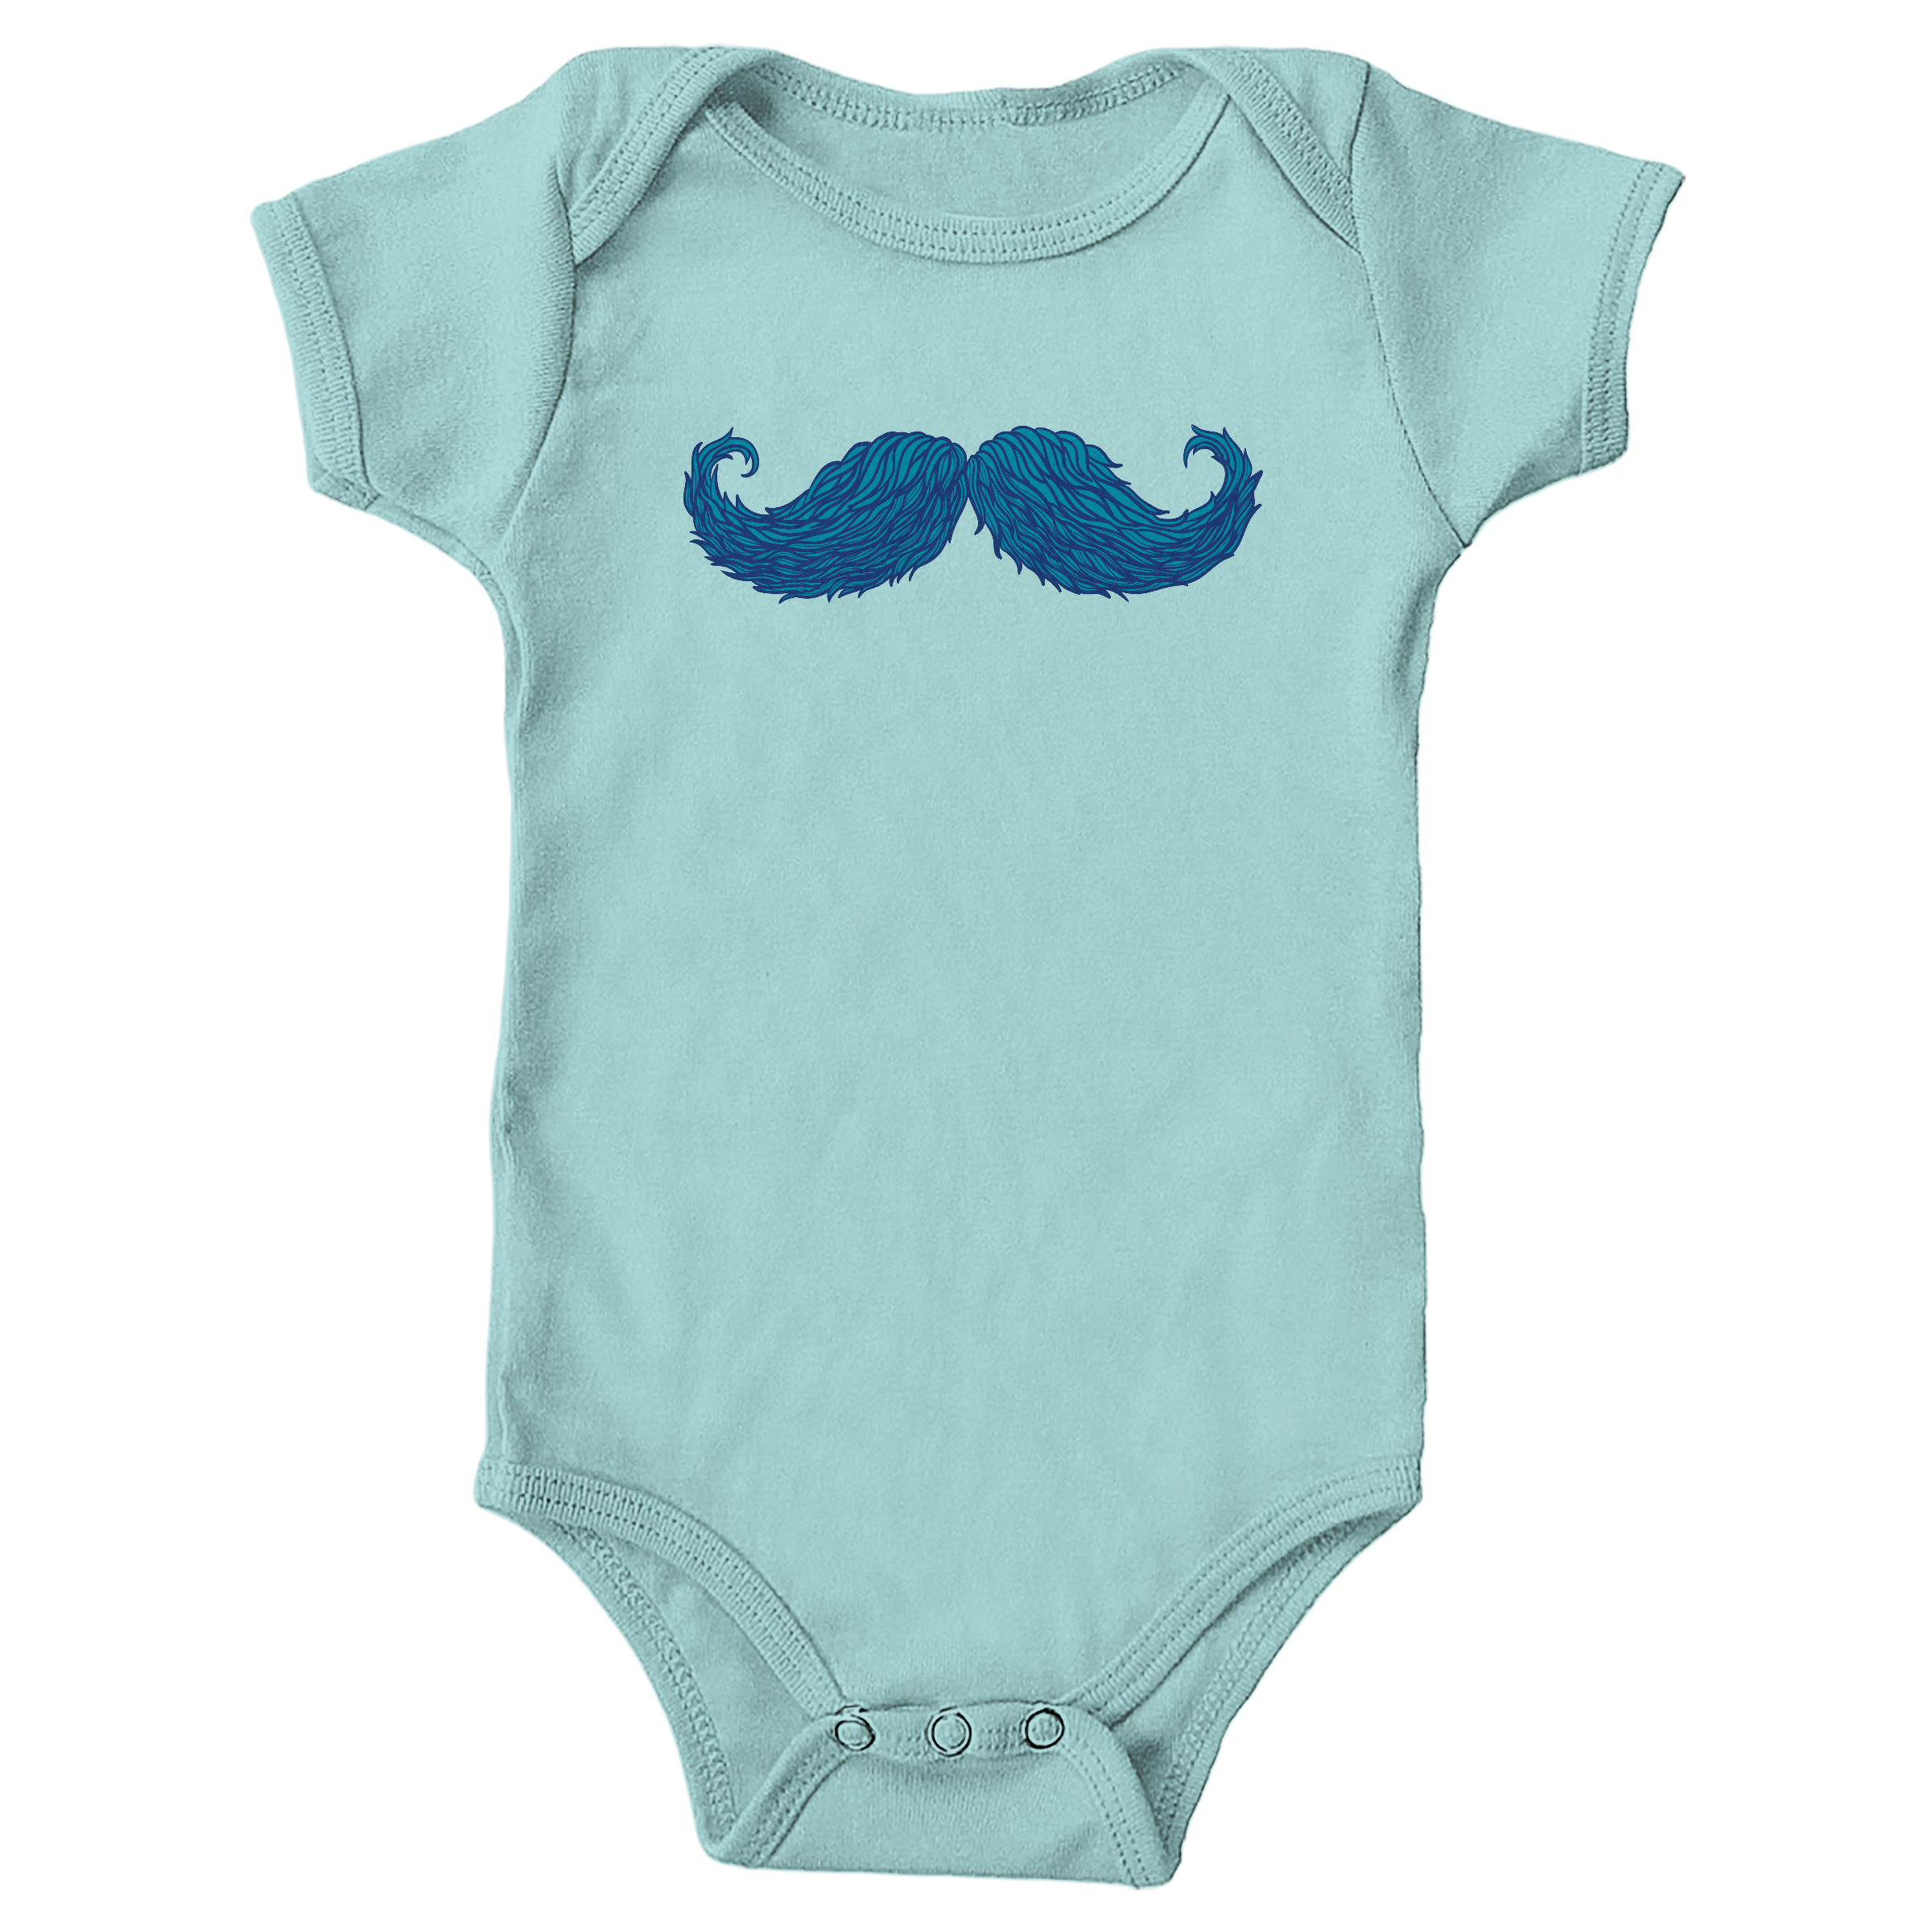 The Cheering Up Mustache Chill (Onesie)